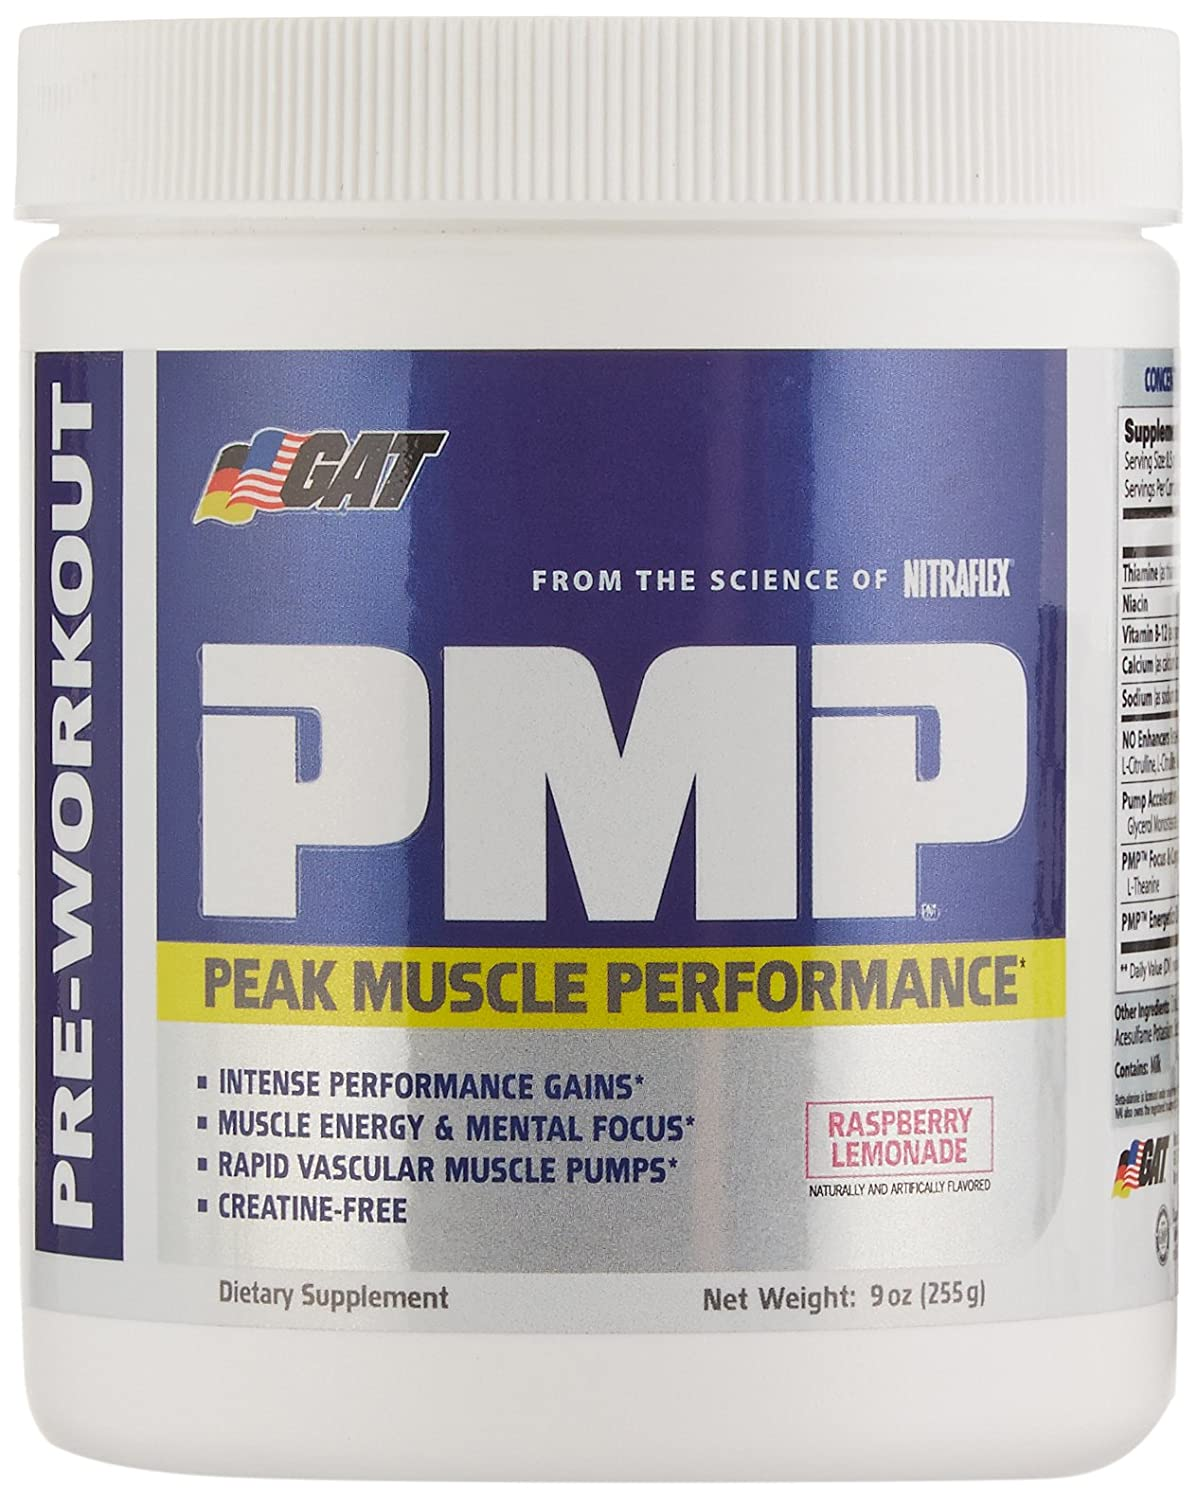 GAT PMP Peak Muscle Performance , Next Generation Pre Workout Powder for Intense Performance Gains, Raspberry Lemonade, 30 Servings, 9 Ounce